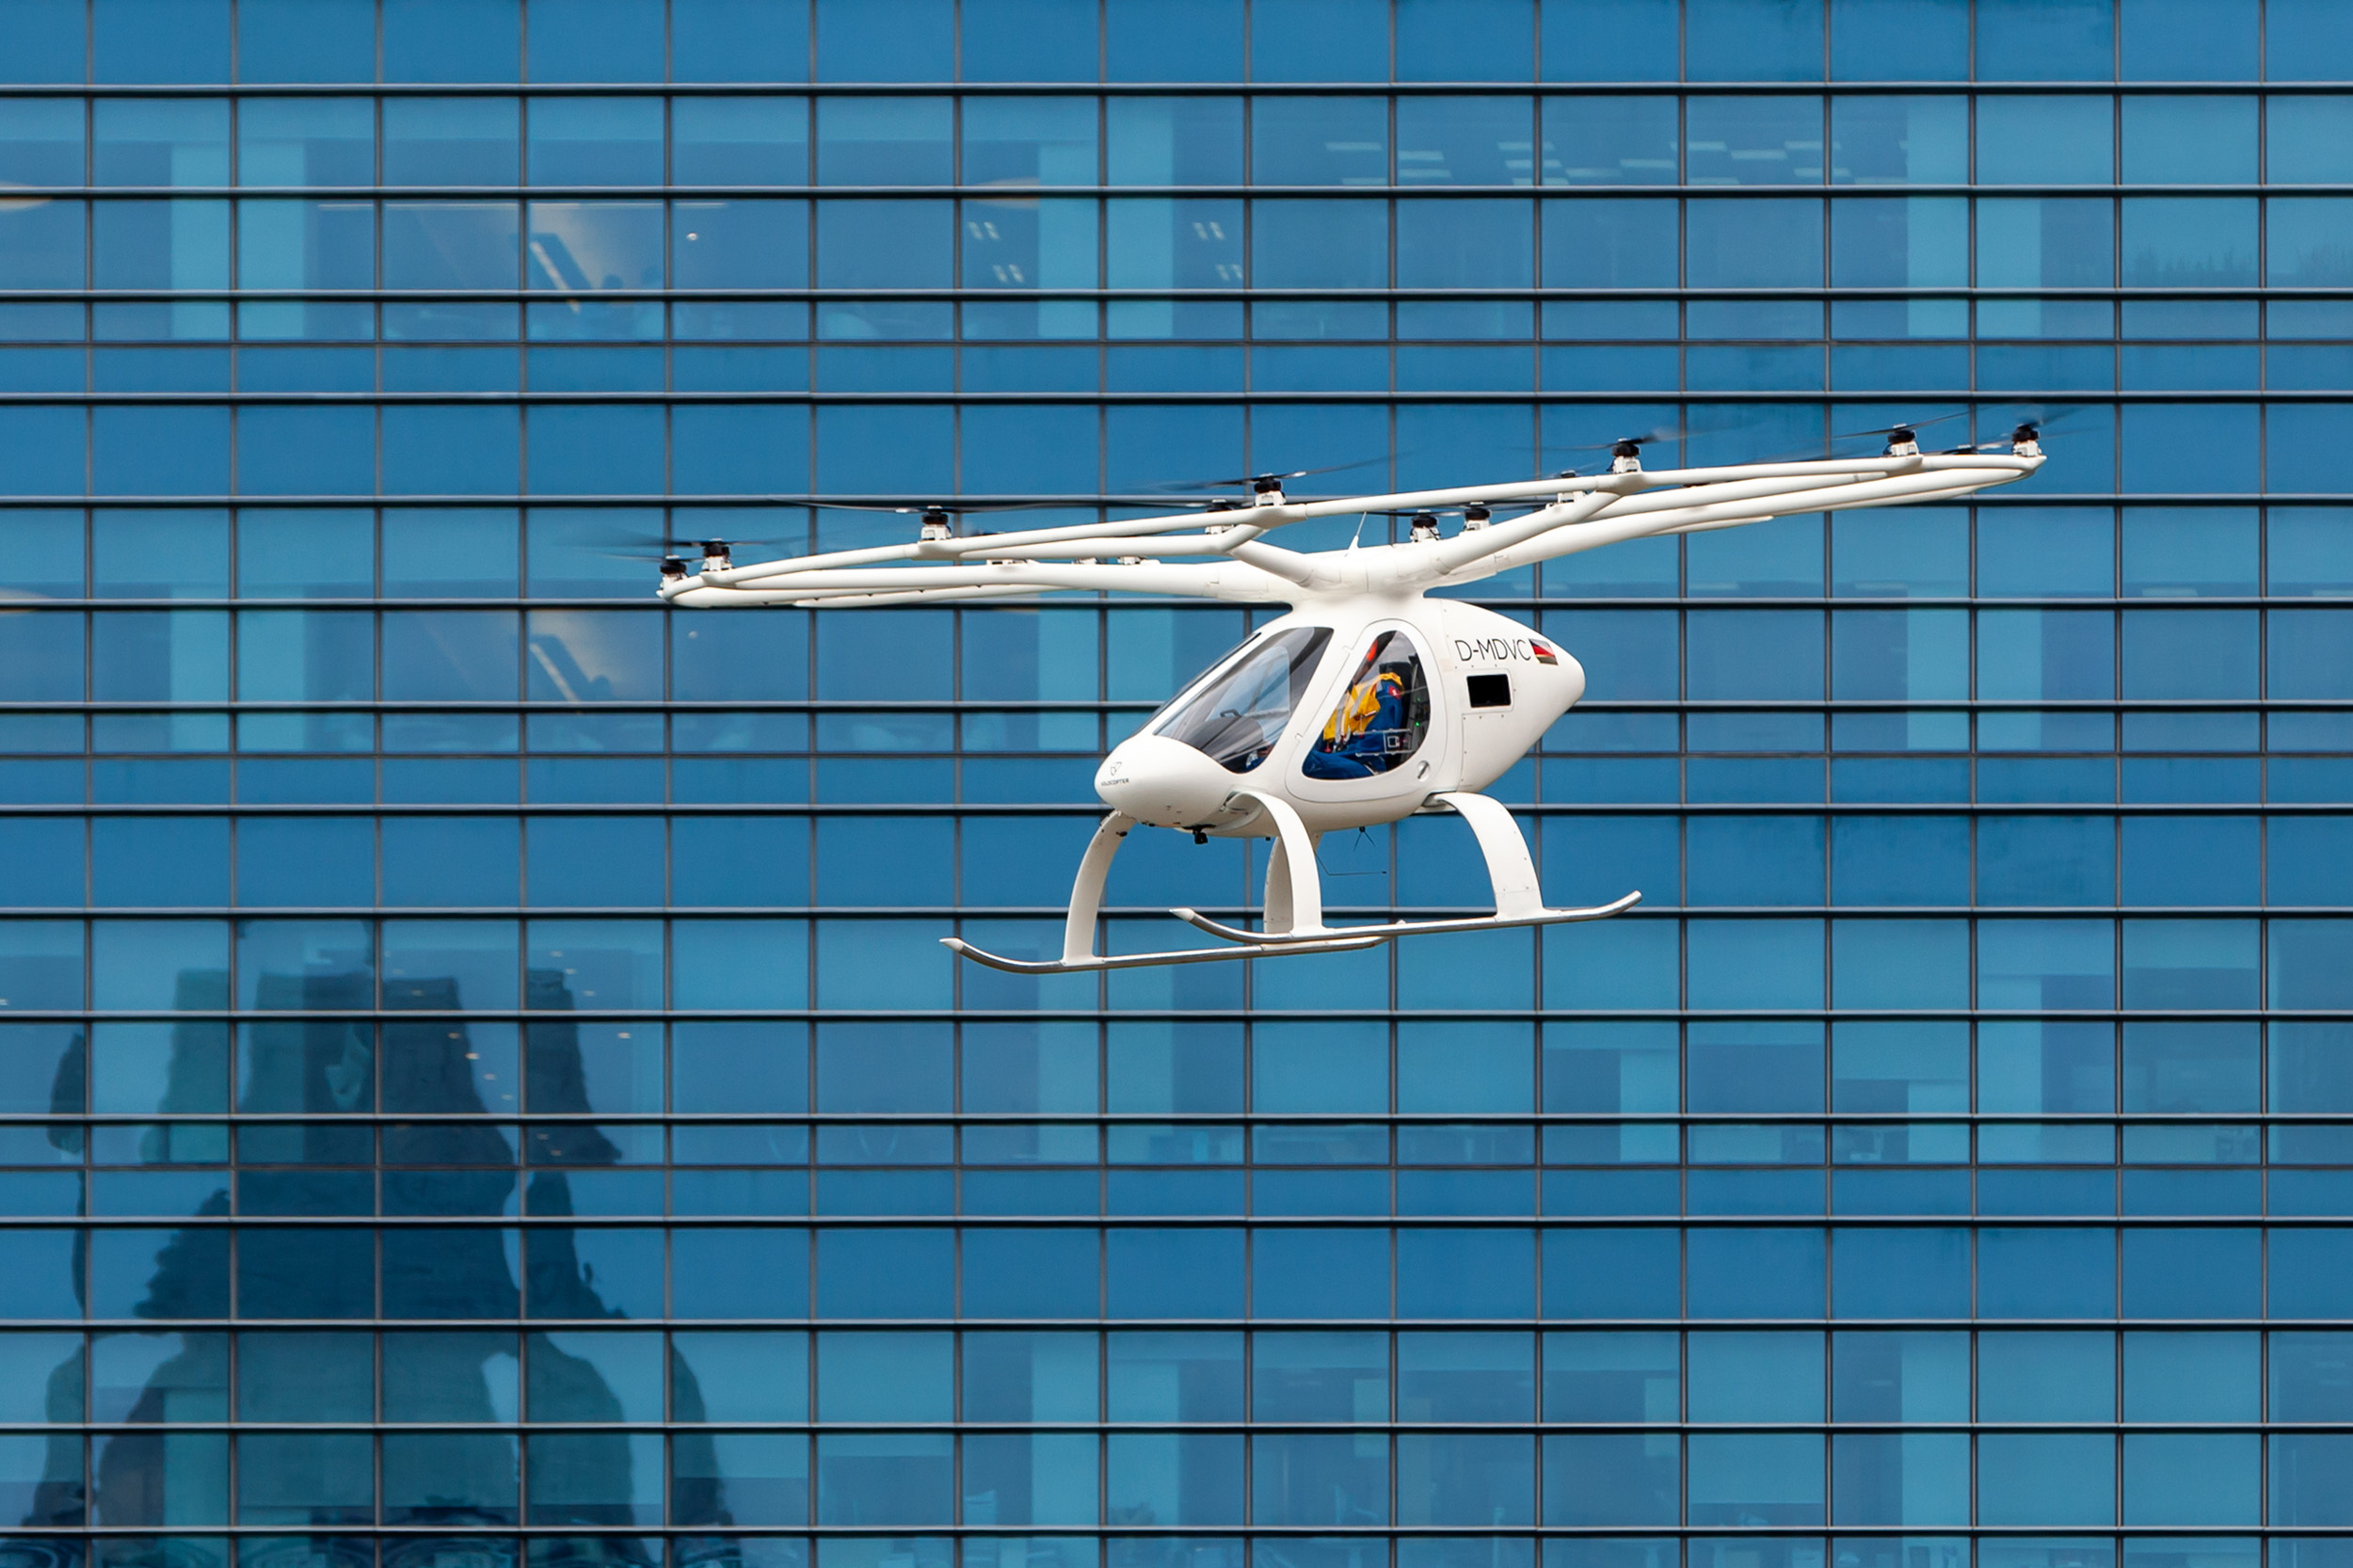 The flight covered a distance of approximately 1.5 km and lasted for two minutes. Photo courtesy: Nikolay Kazakov for Volocopter